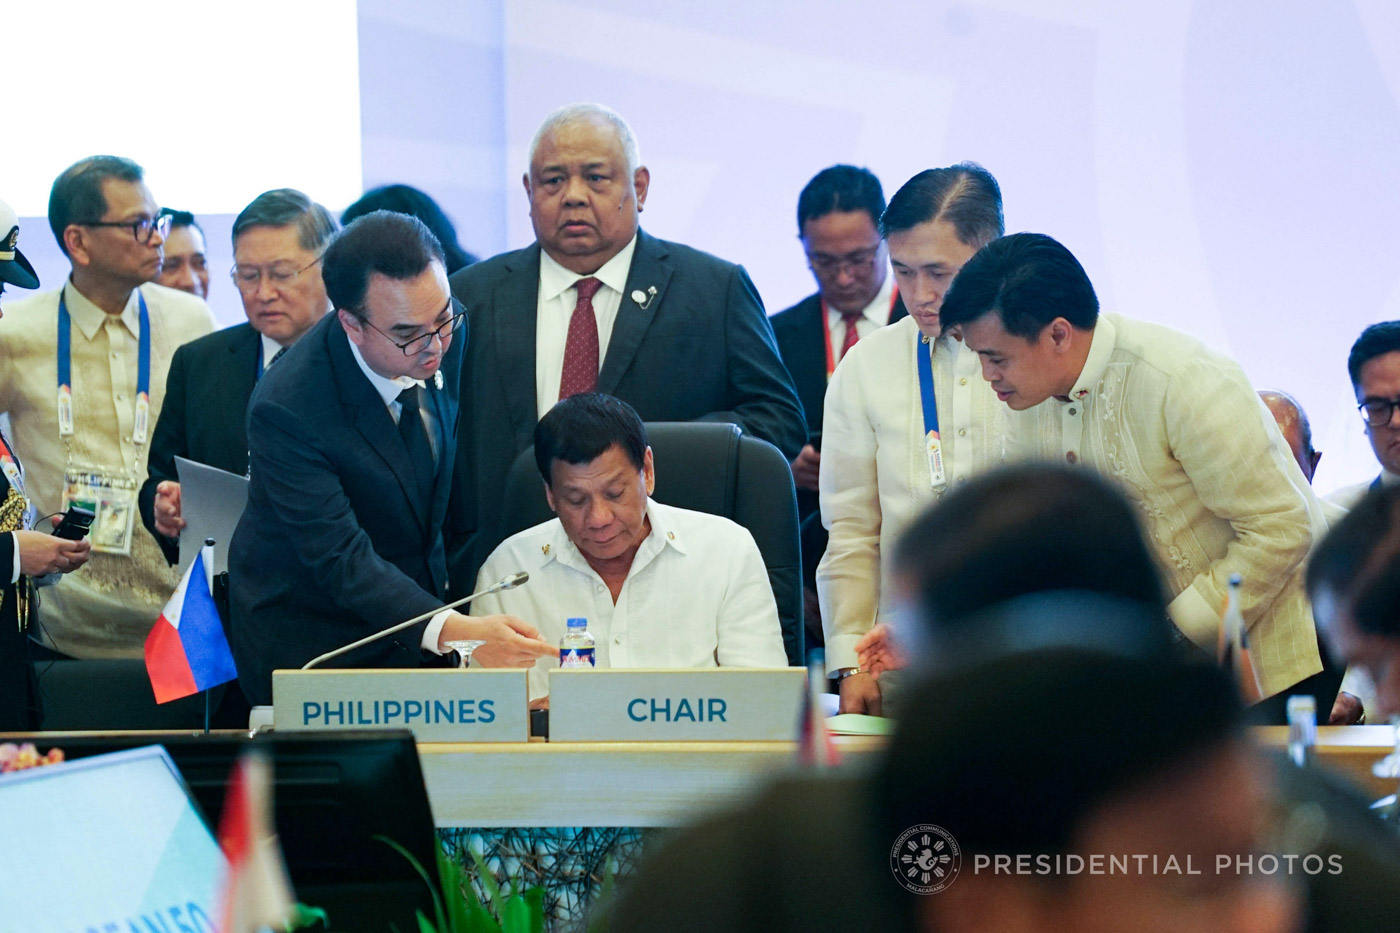 RELUCTANT SUMMIT PARTICIPANT. President Rodrigo Duterte presides over a meeting during the ASEAN Summit in Manila in November. Malacau00f1ang file photo